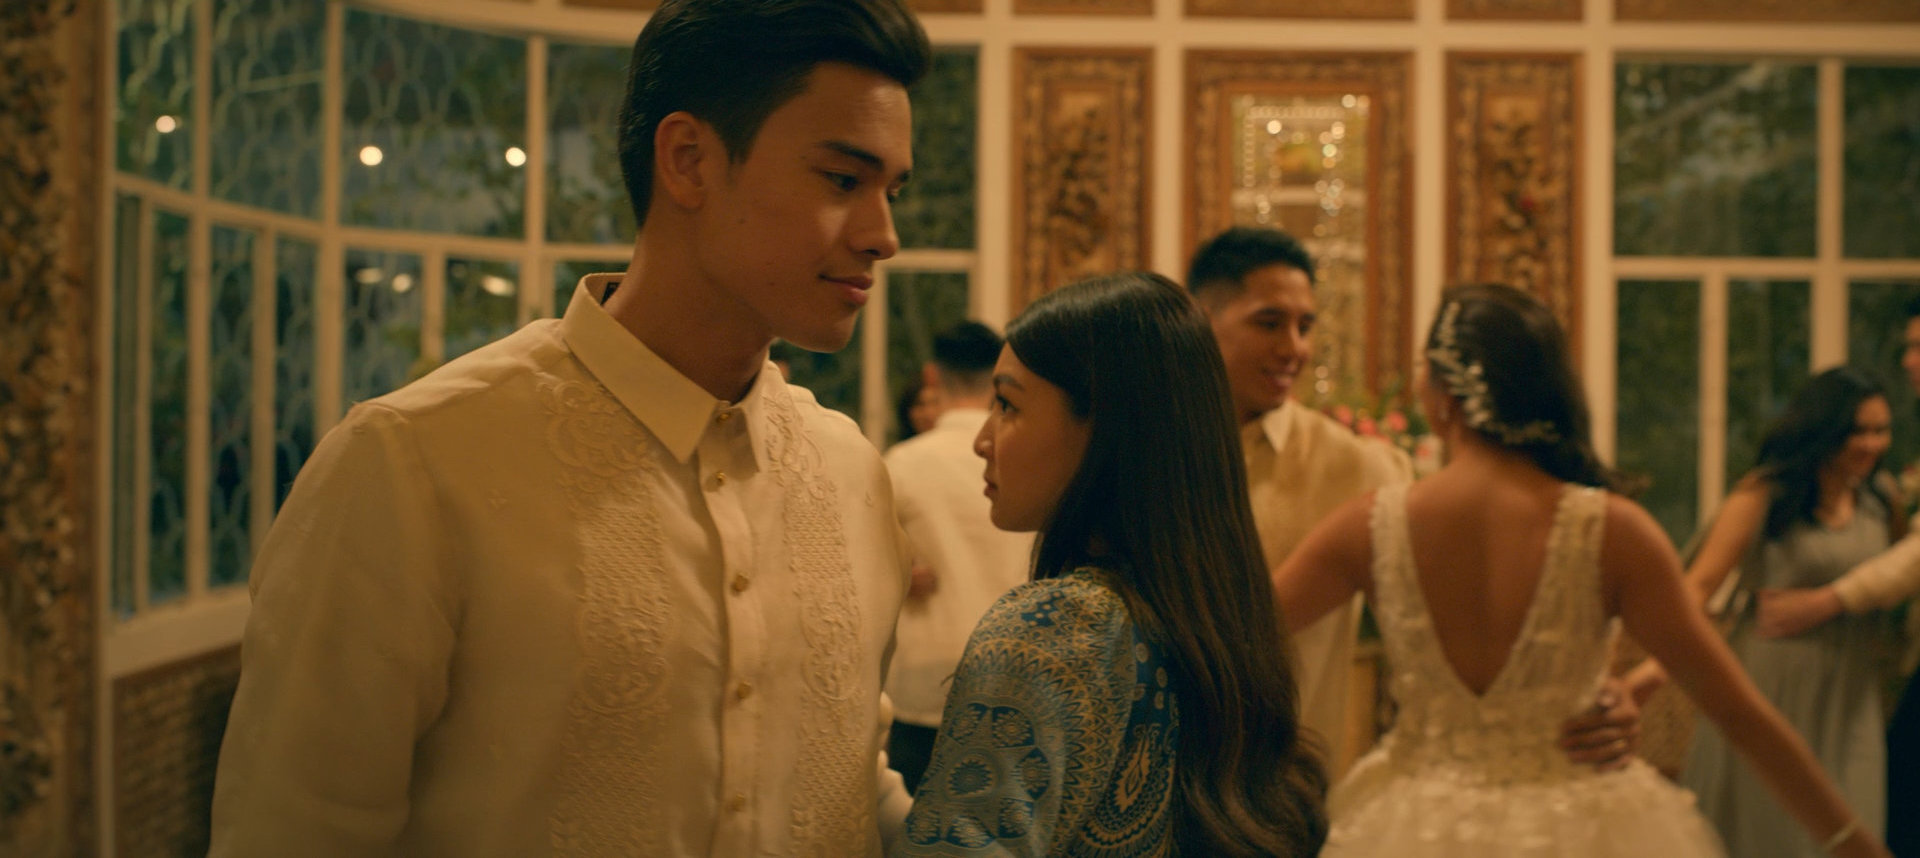 Nadine Lustre and Marco Gumabao in Ulan (2019)